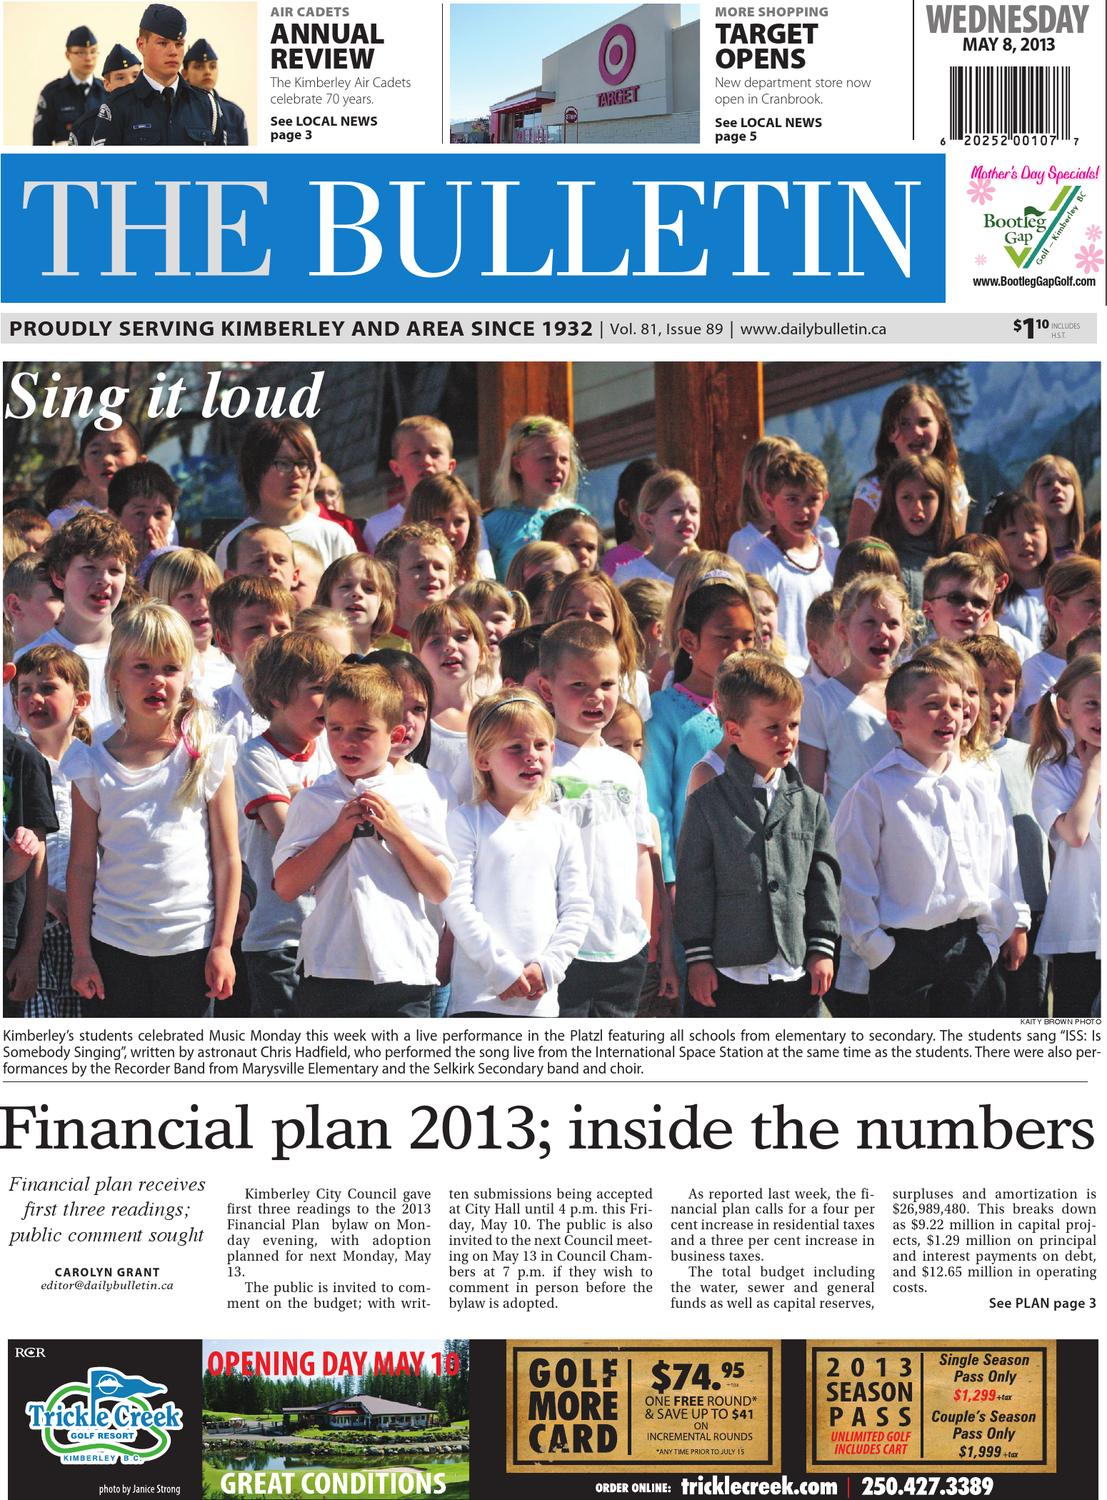 Kimberley Daily Bulletin, May 08, 2013 by Black Press - issuu